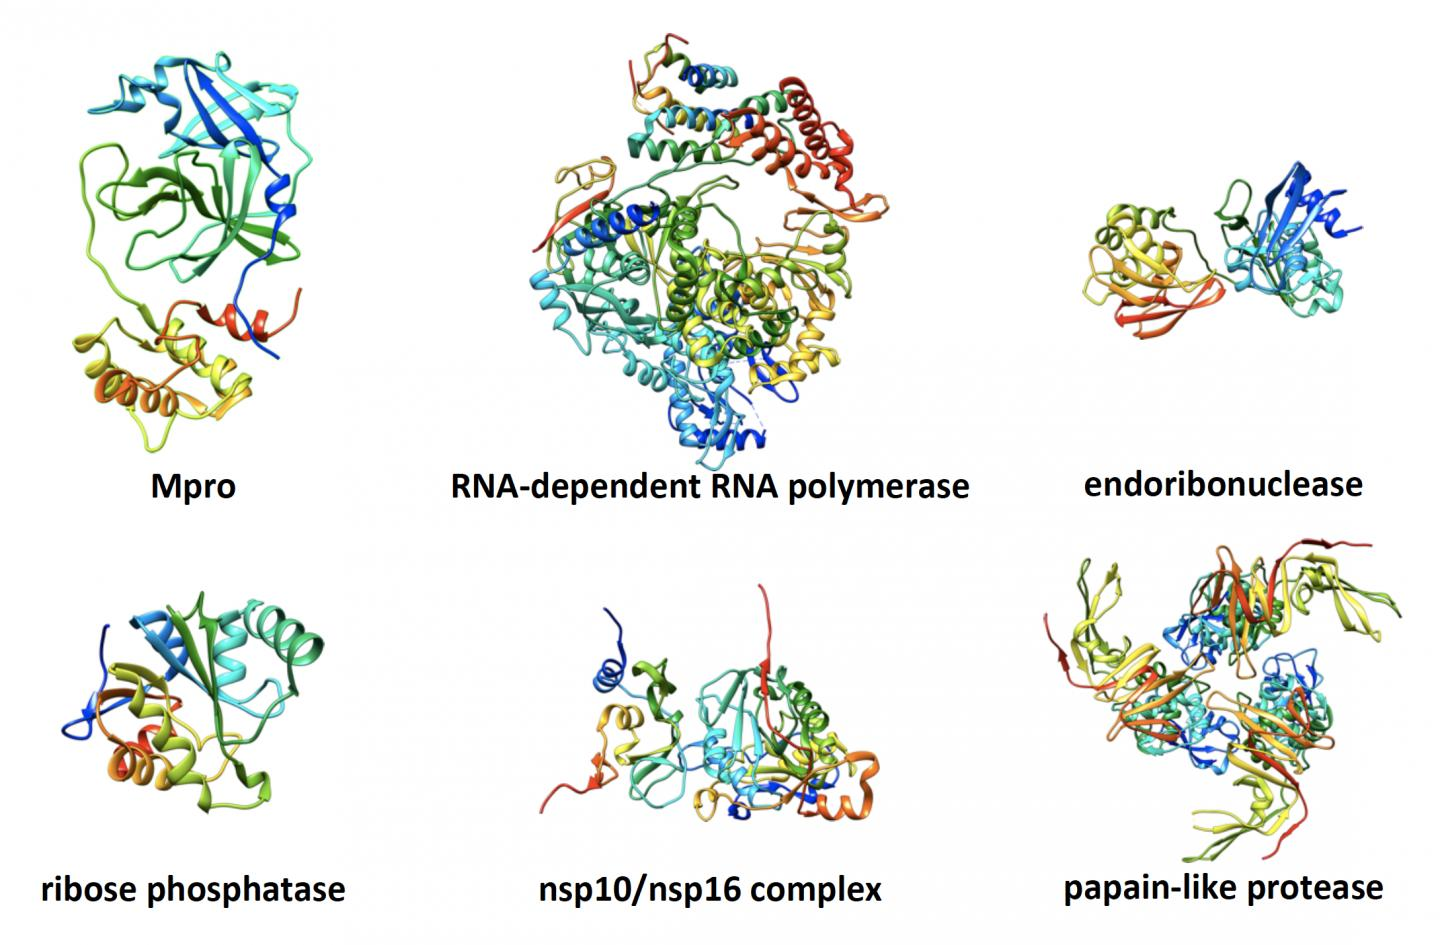 Gallery of Initial SARS-CoV-2 Nonstructural Proteins